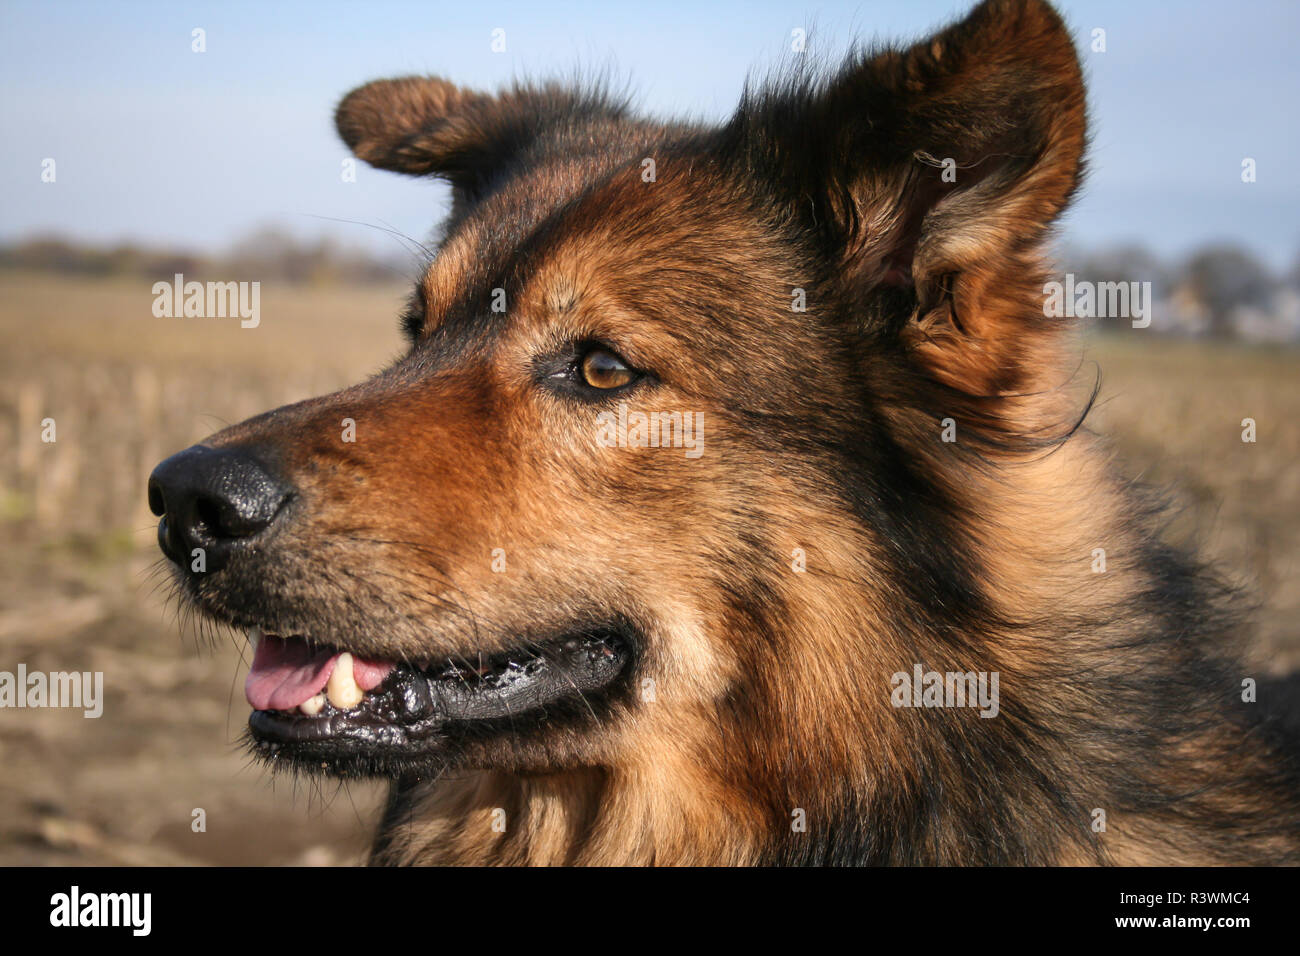 Mixed dog feeling the wind in his face, outside in the nature - Stock Image